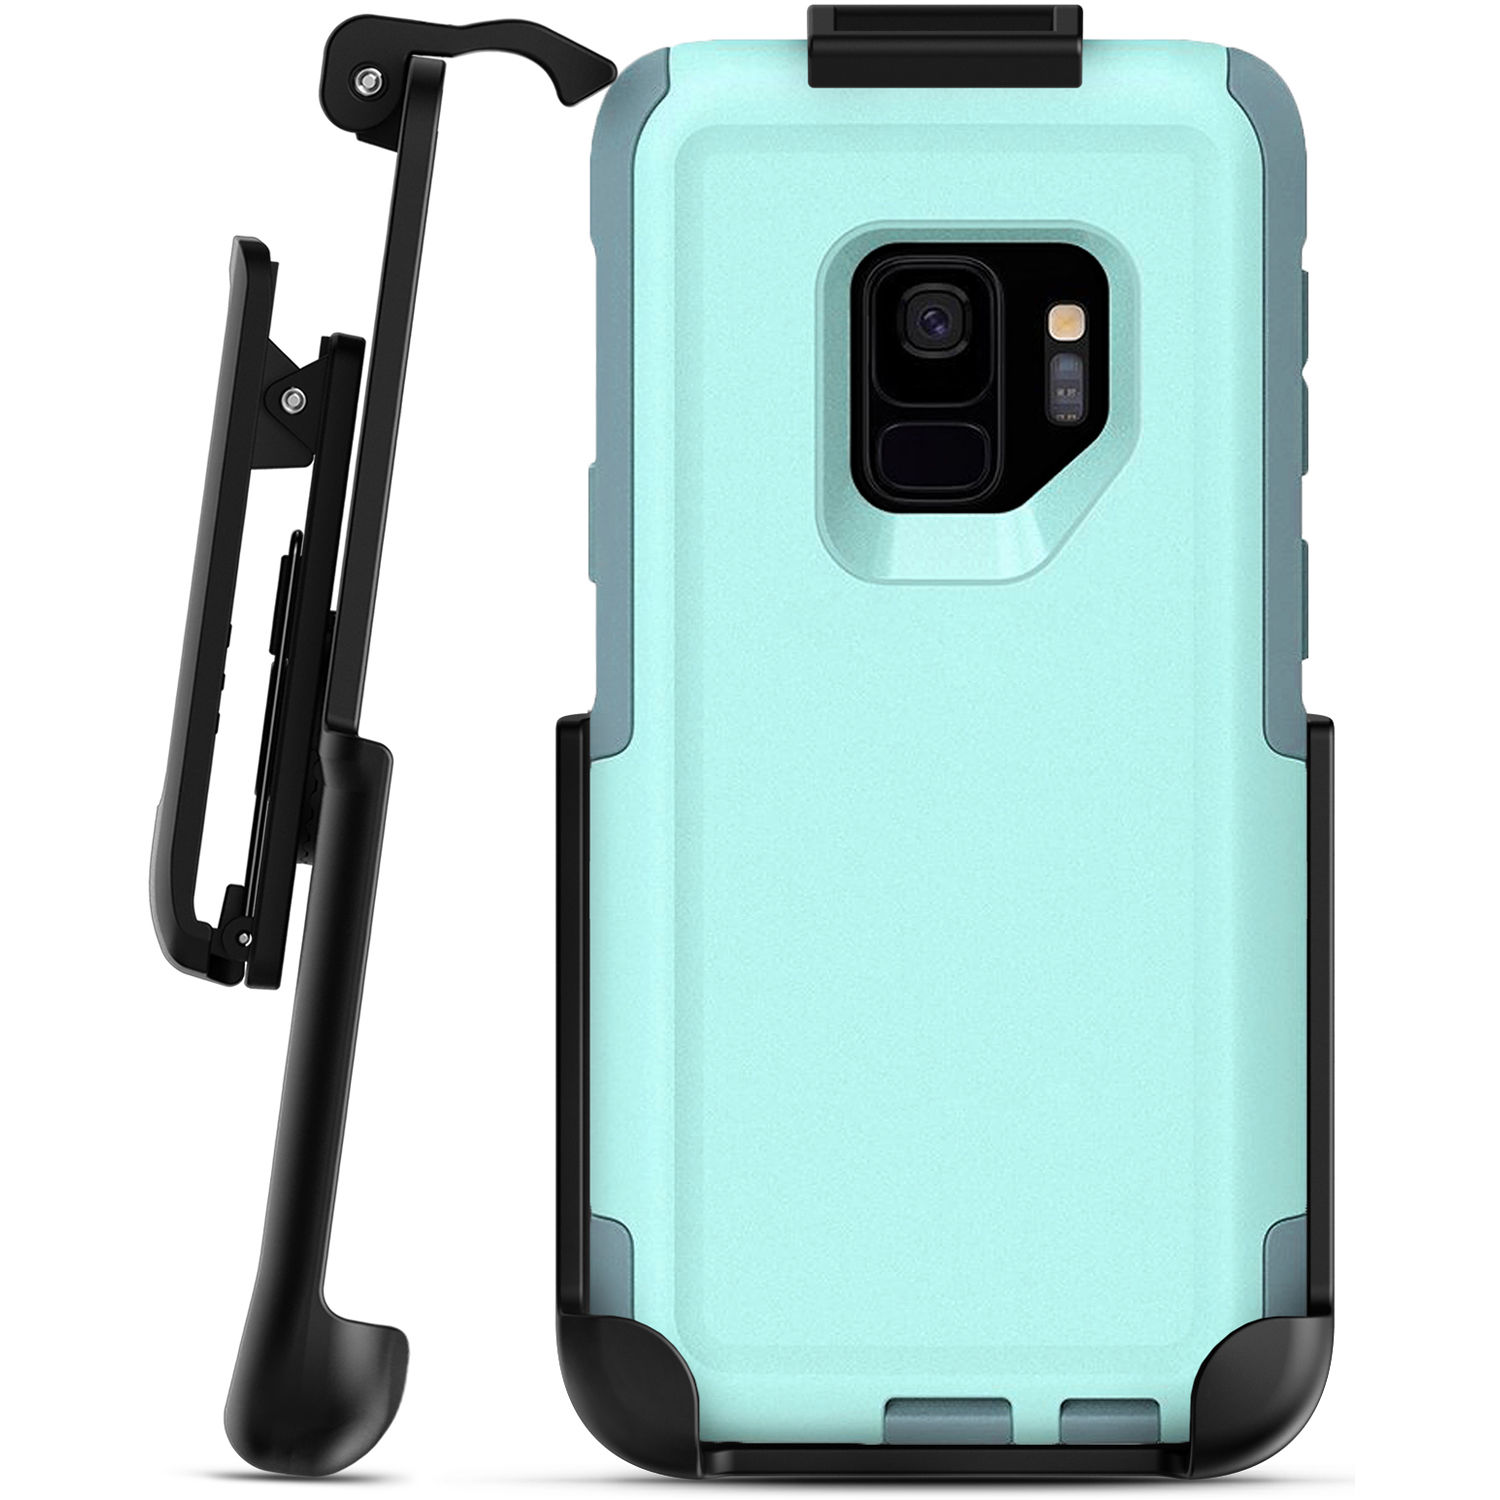 reputable site 3b411 75ad5 Encased Belt Clip Holster for Galaxy S9 OtterBox Commuter Case